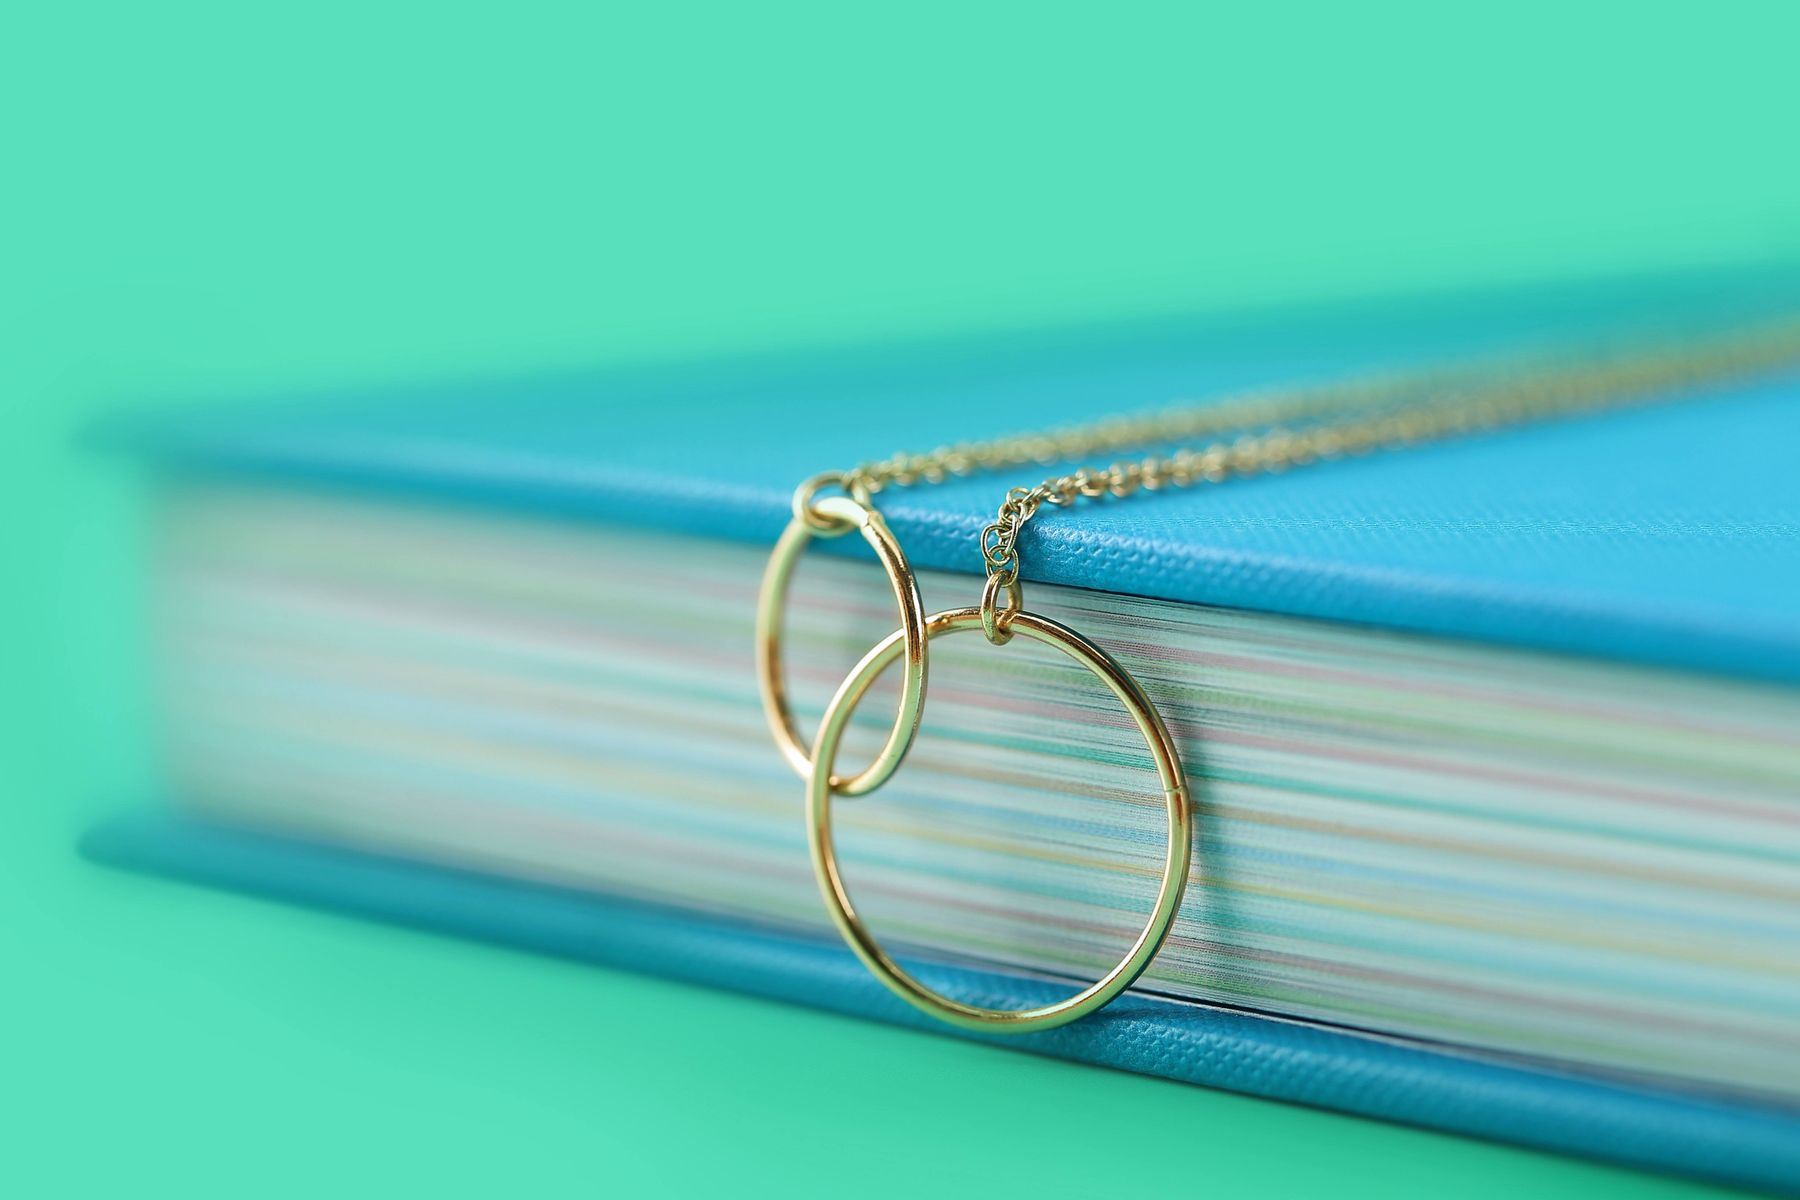 Clean gold necklace chain draped over a book